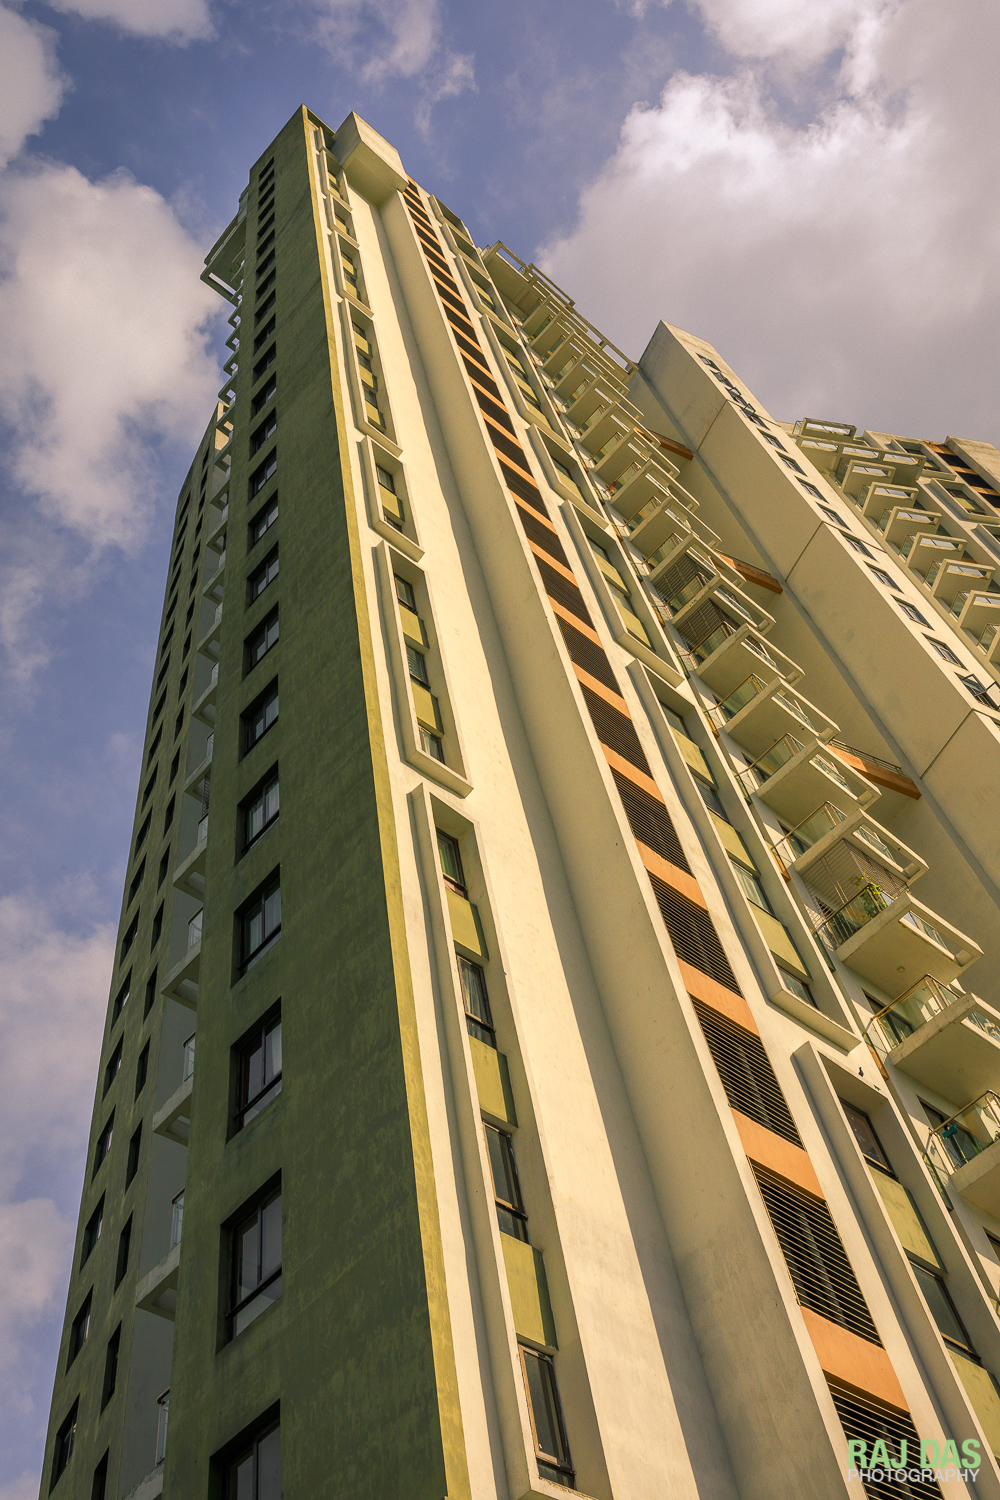 One of five luxury high rise towers in Eden Court where this residence occupies the top two floors